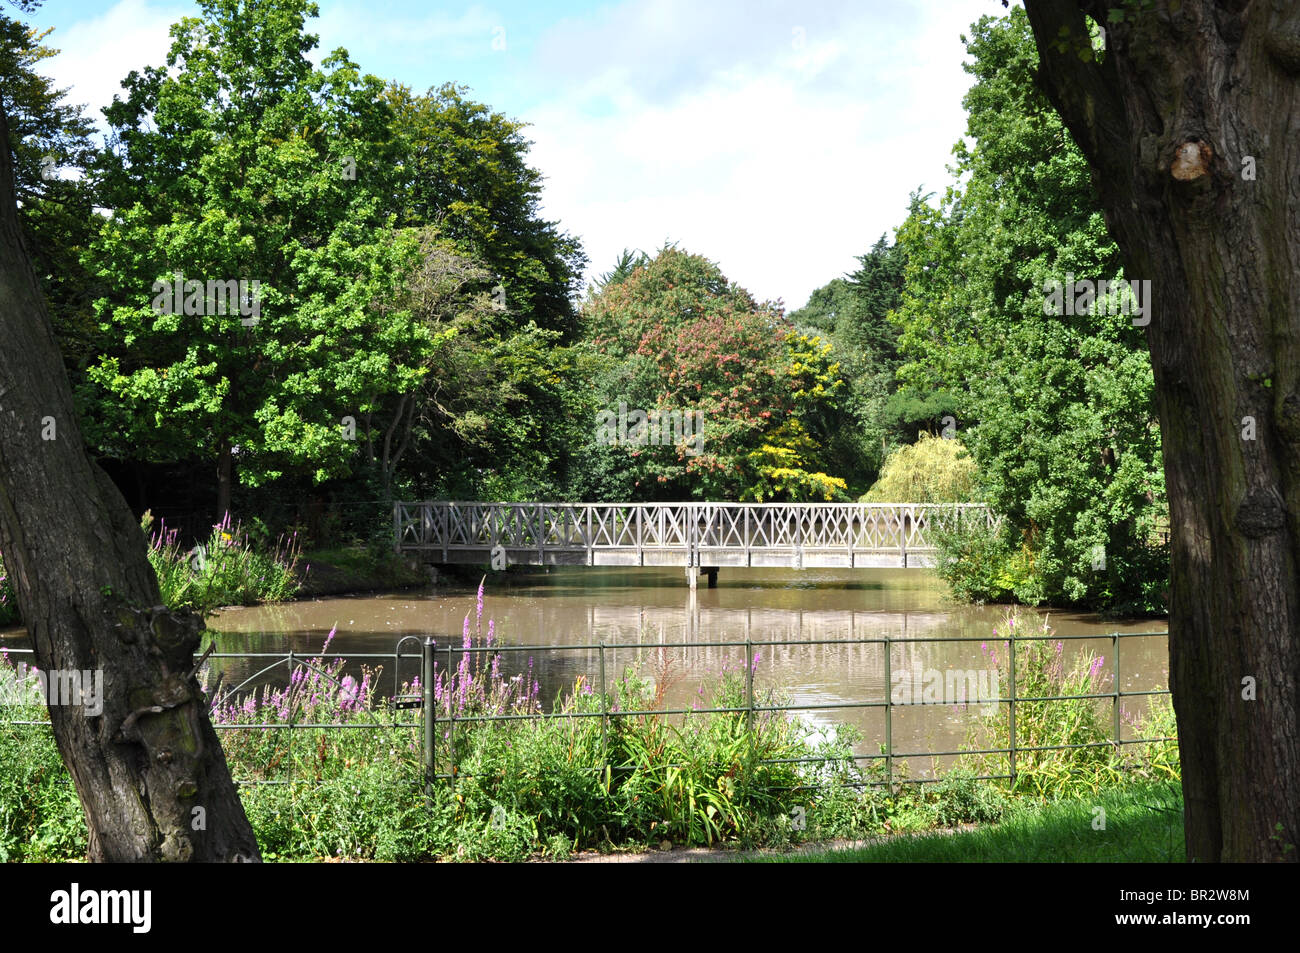 A bridge across one of the lakes in Birkenhead Park set amongst peaceful countryside, viewed through two tall trees. - Stock Image